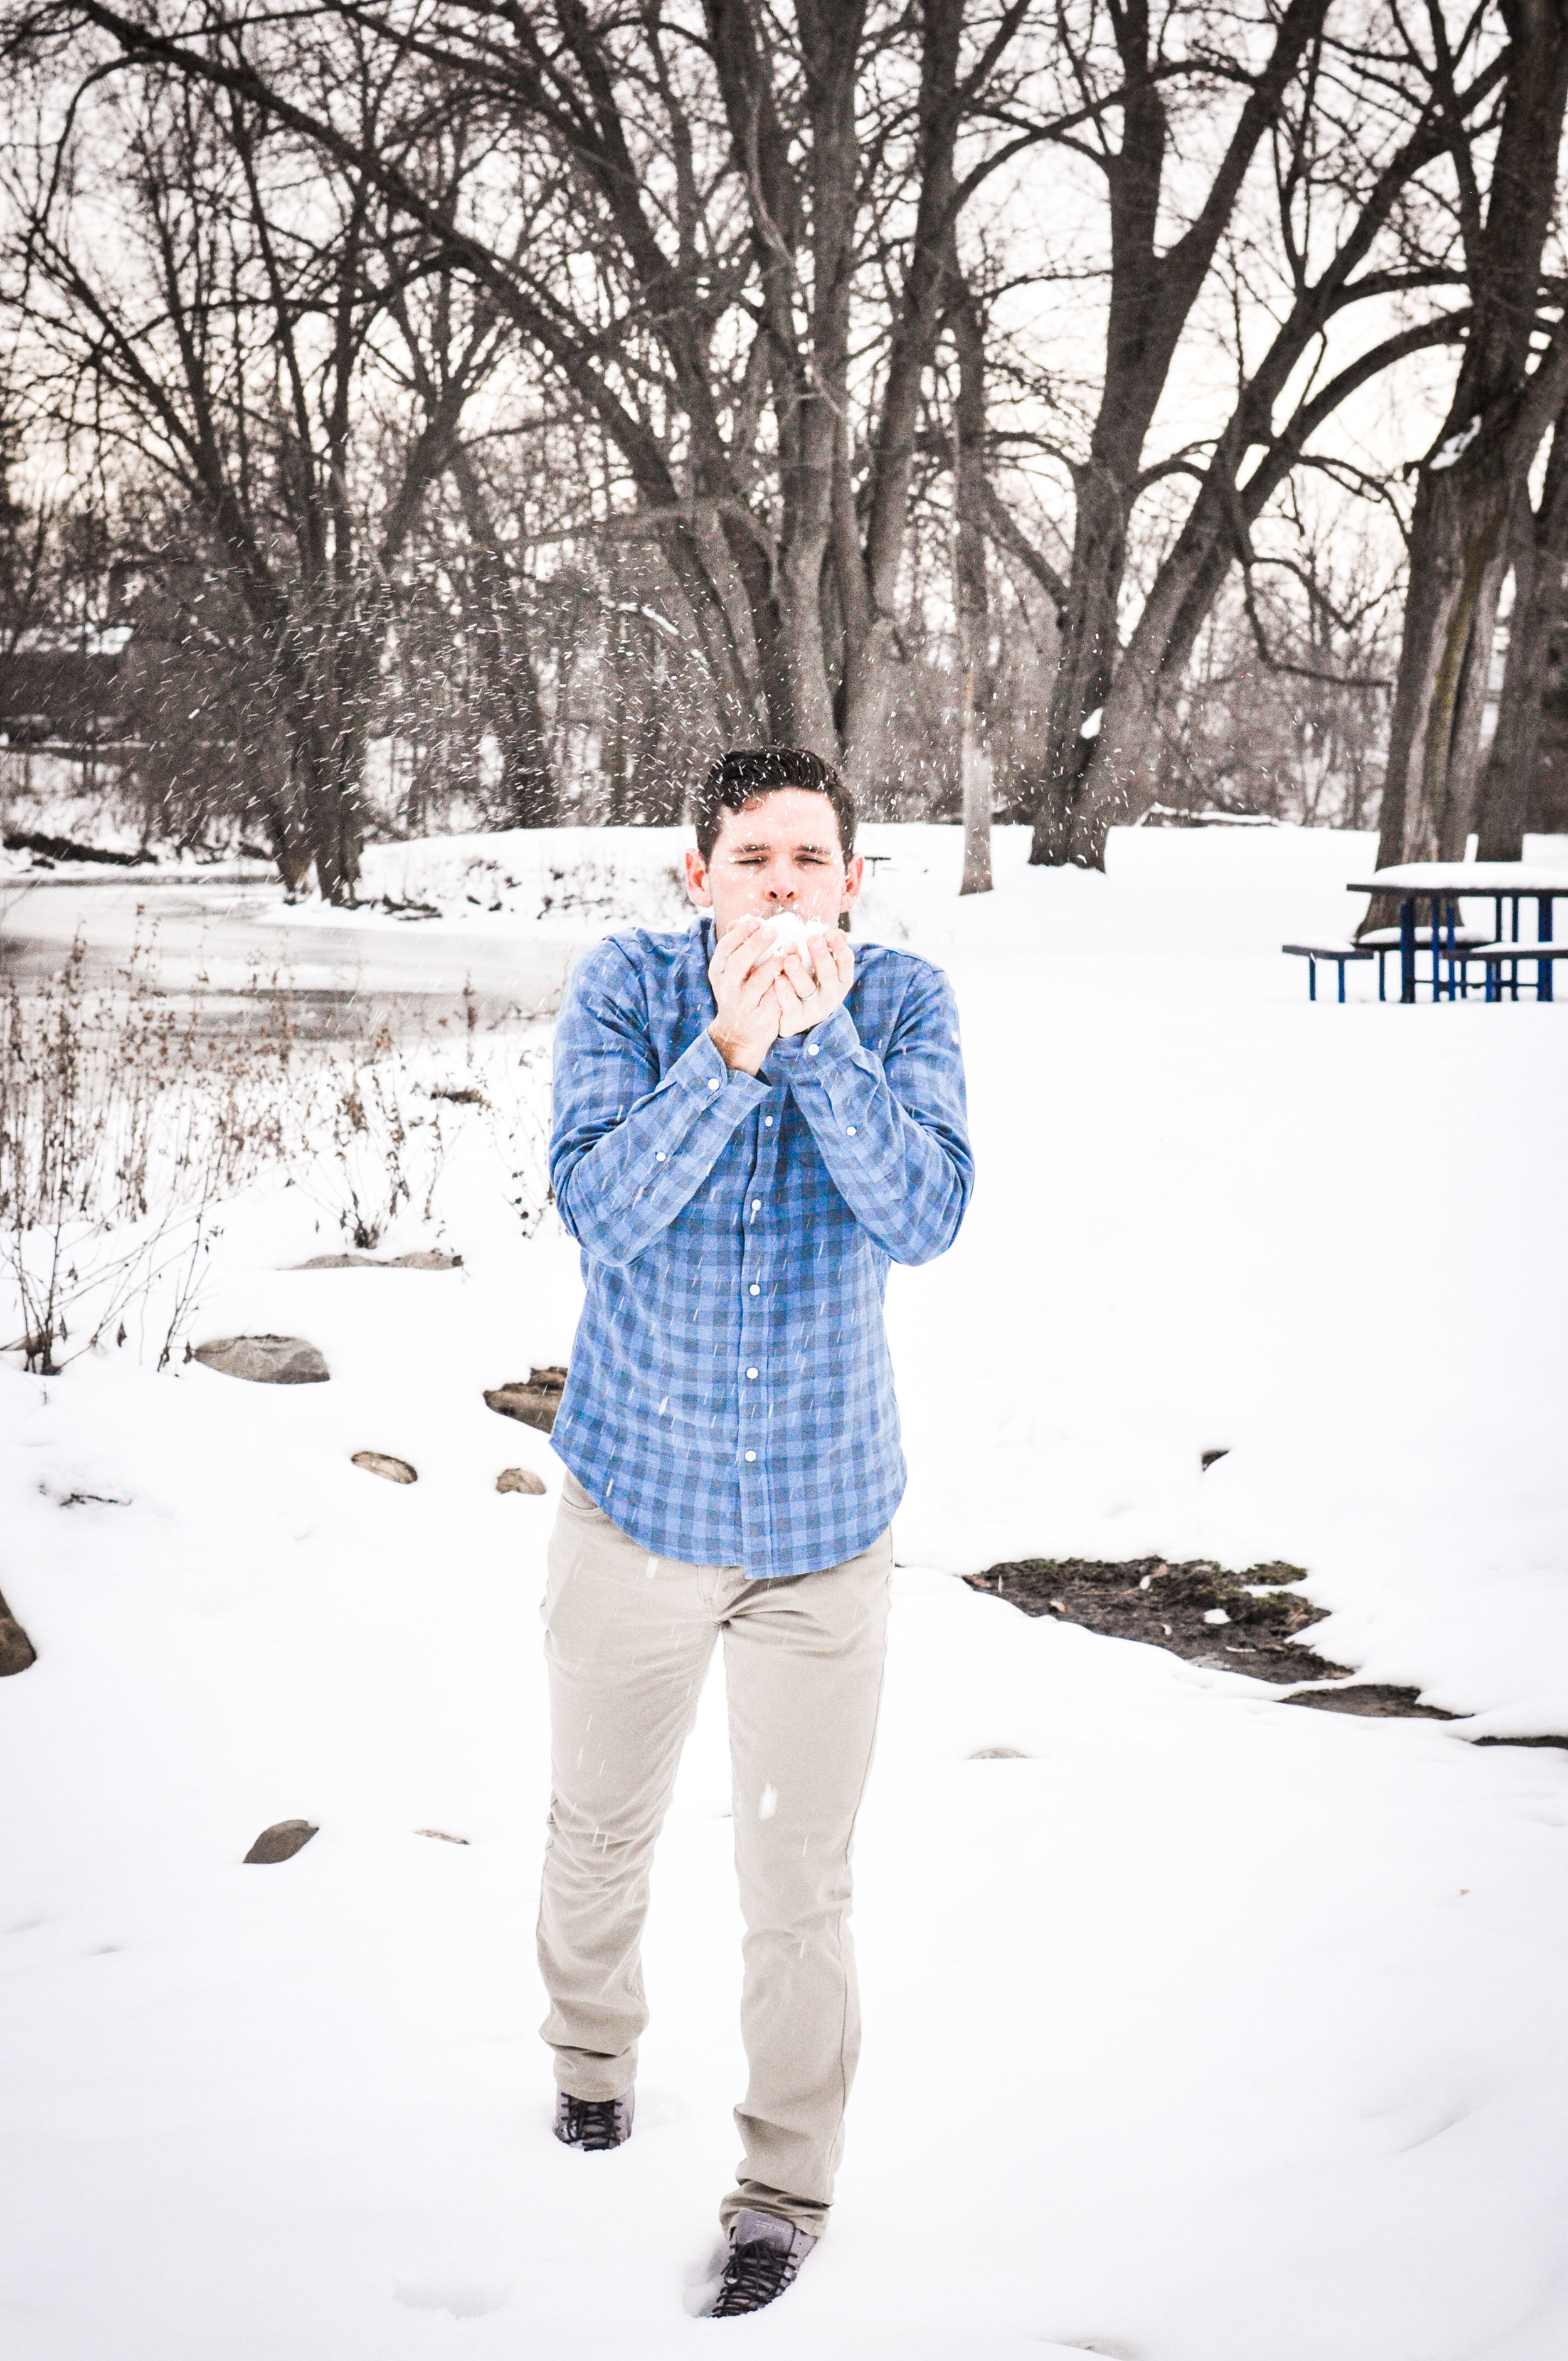 Man in gingham blue shirt in snow